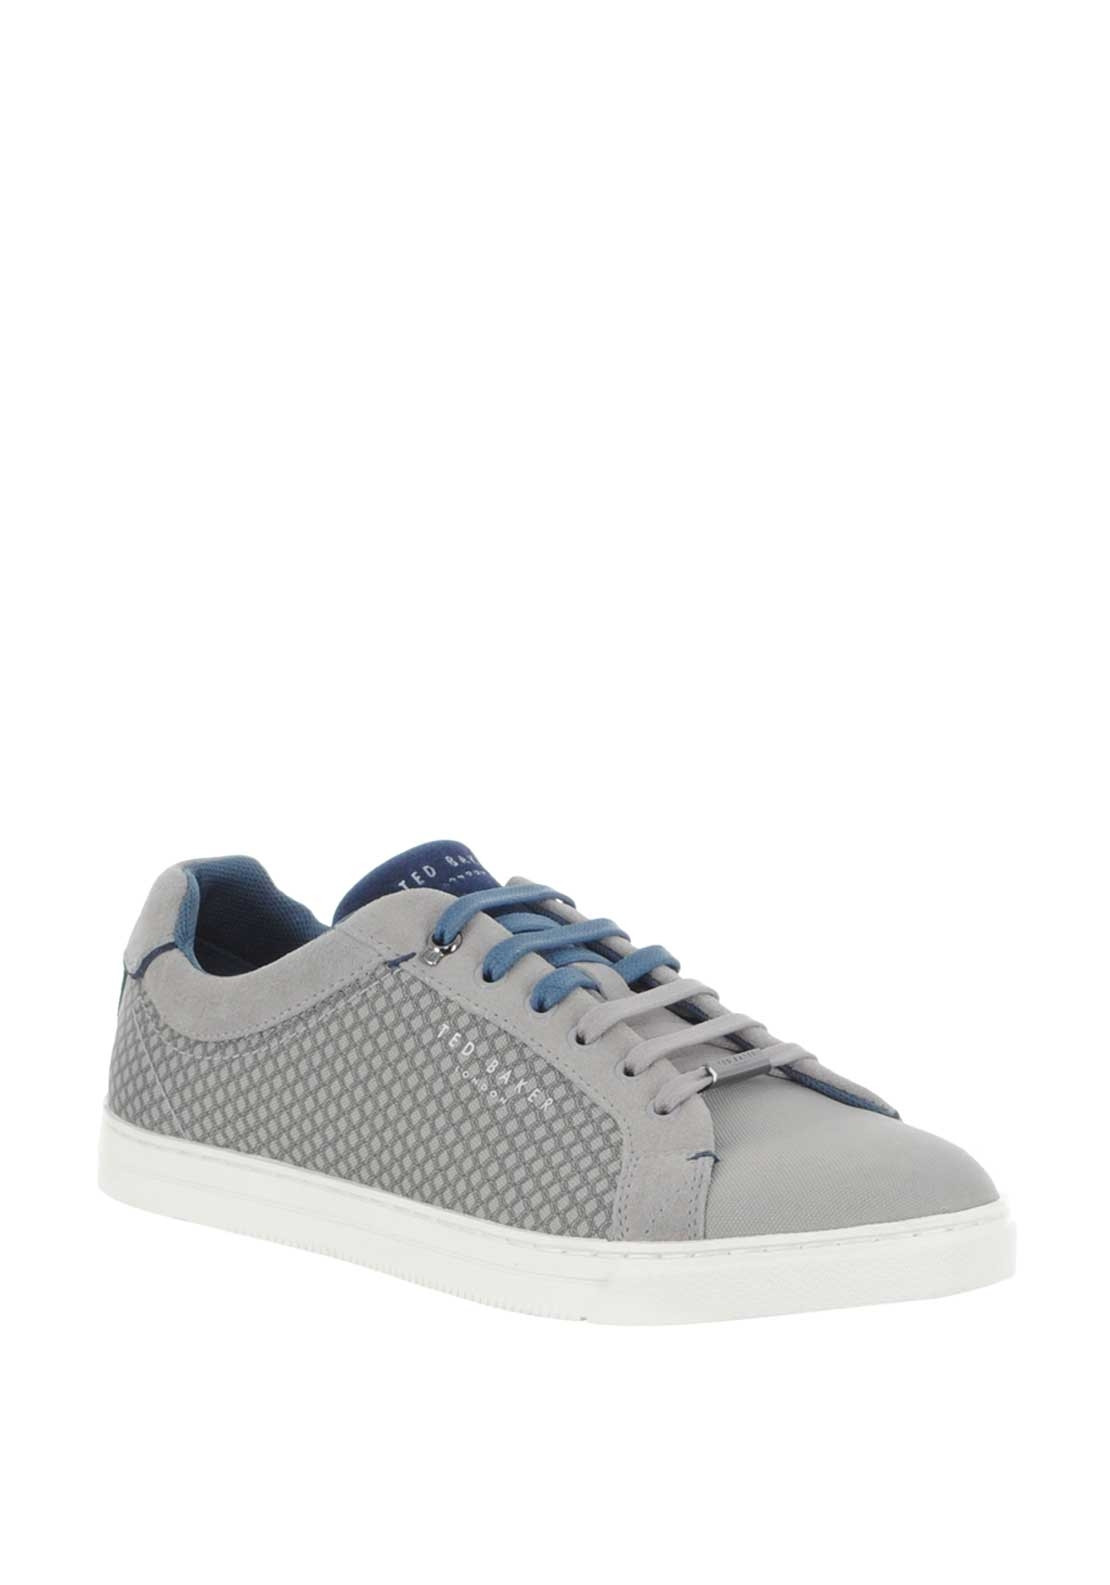 Ted Baker Suede Patterned Trainers